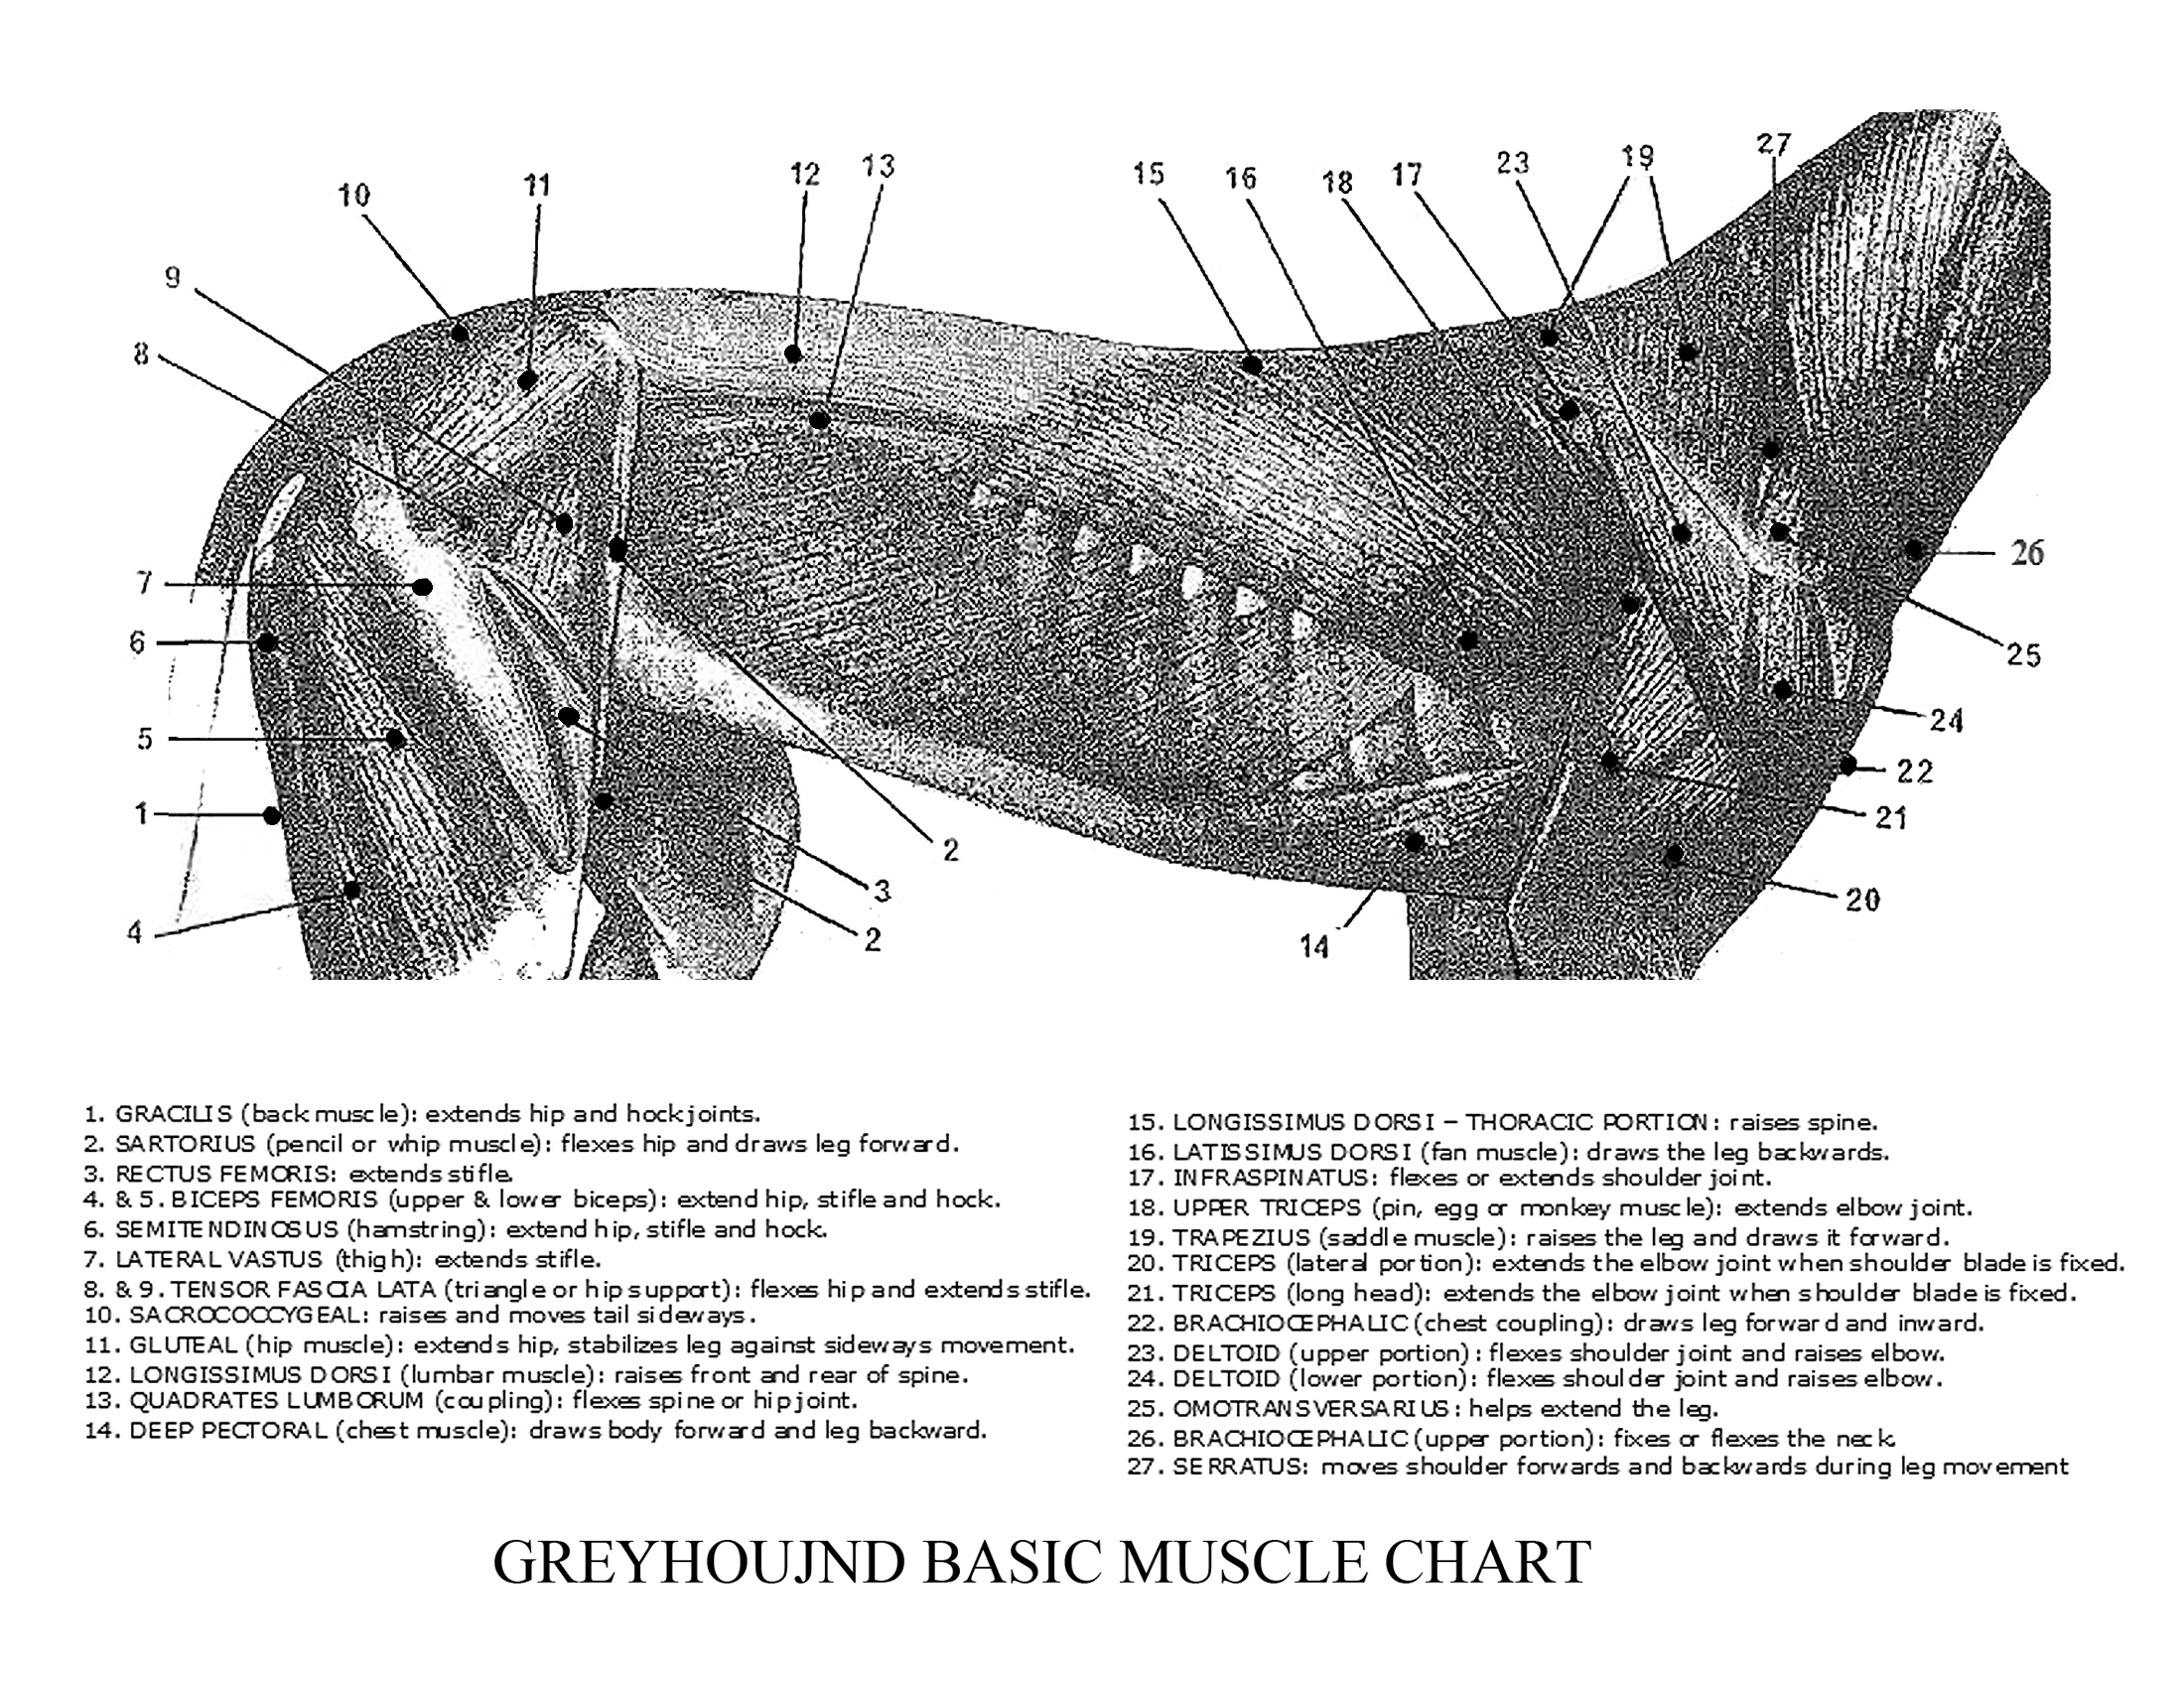 Greyhound Anatomy Diagram - Basic Muscles in Detail - click the link ...